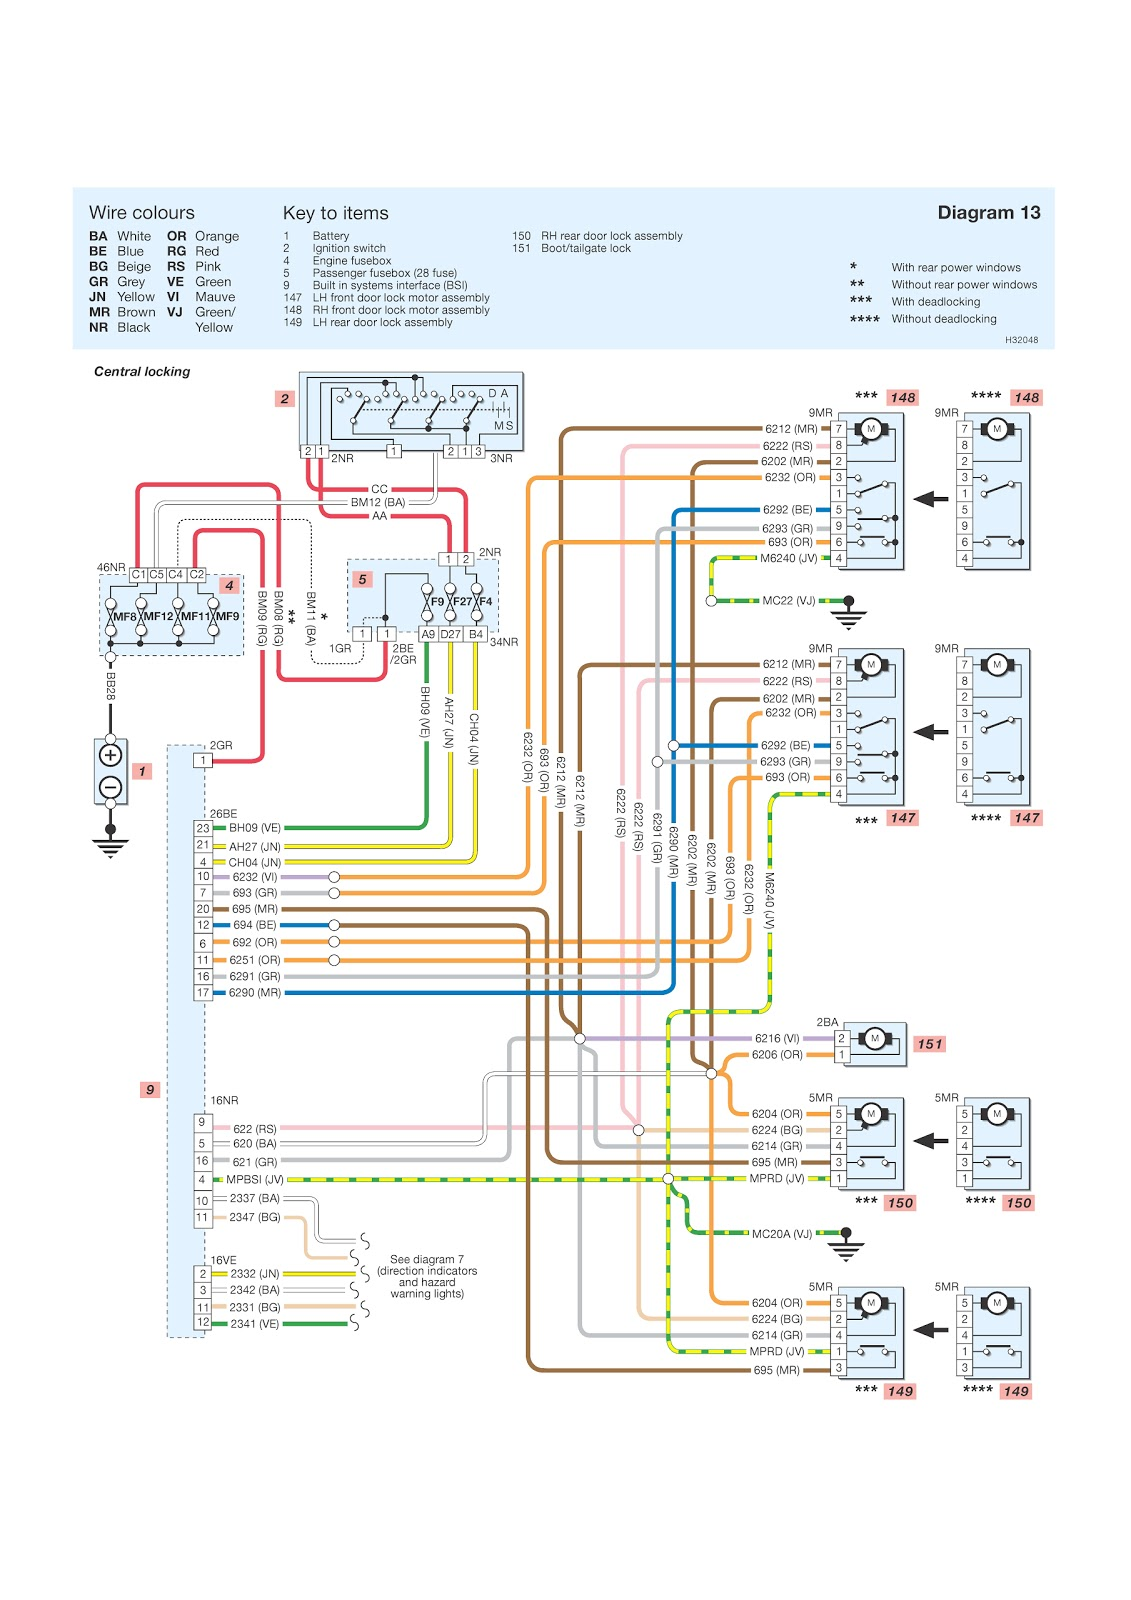 ignition interlock wiring diagram